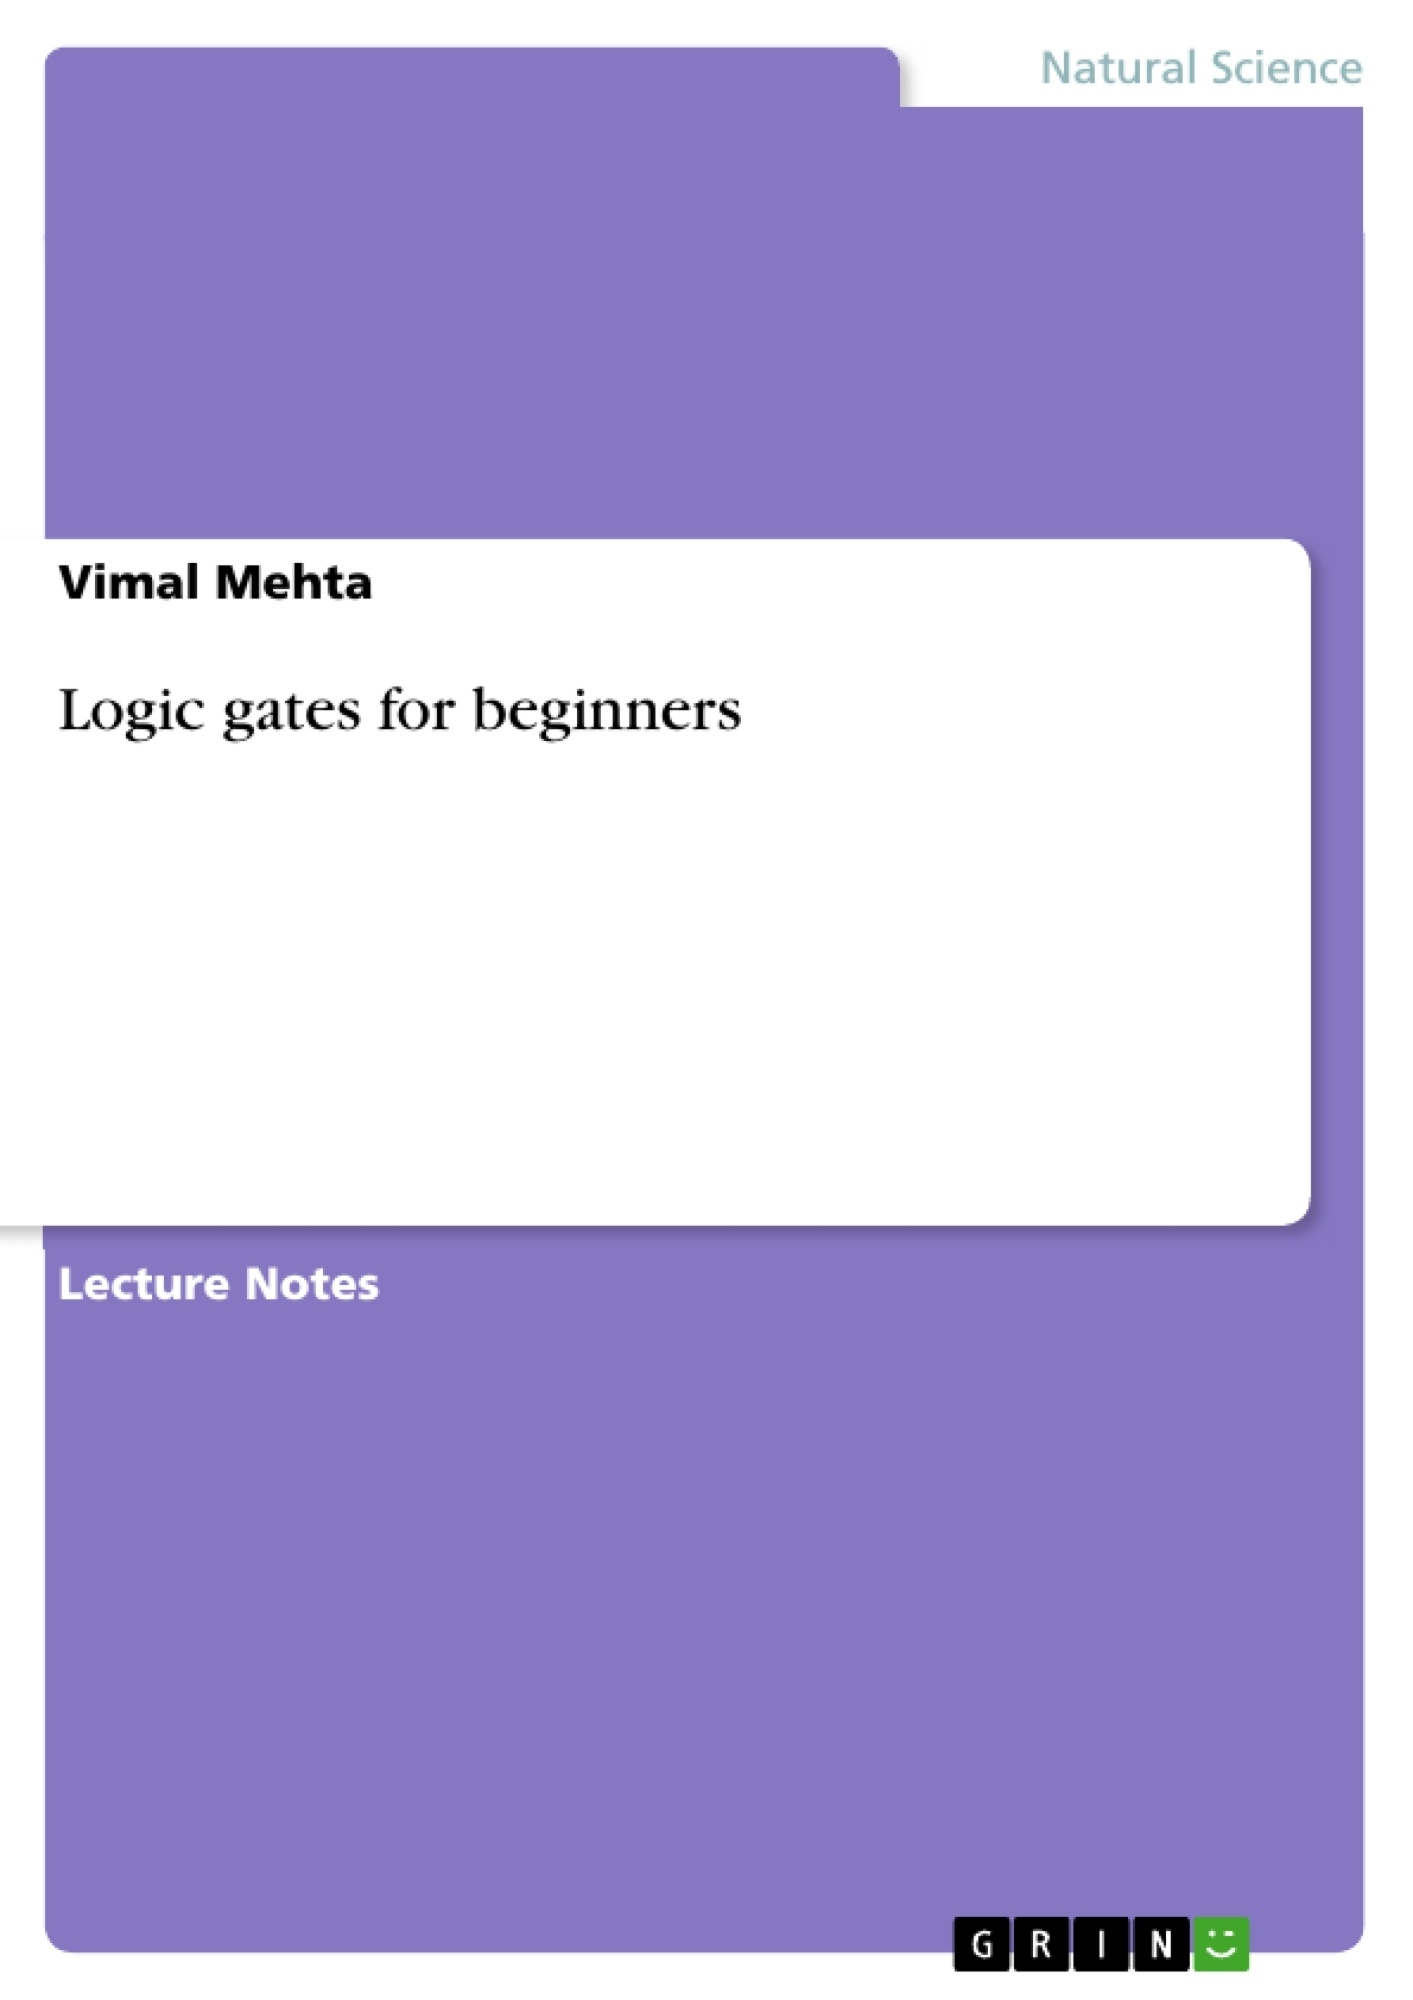 Title: Logic gates for beginners